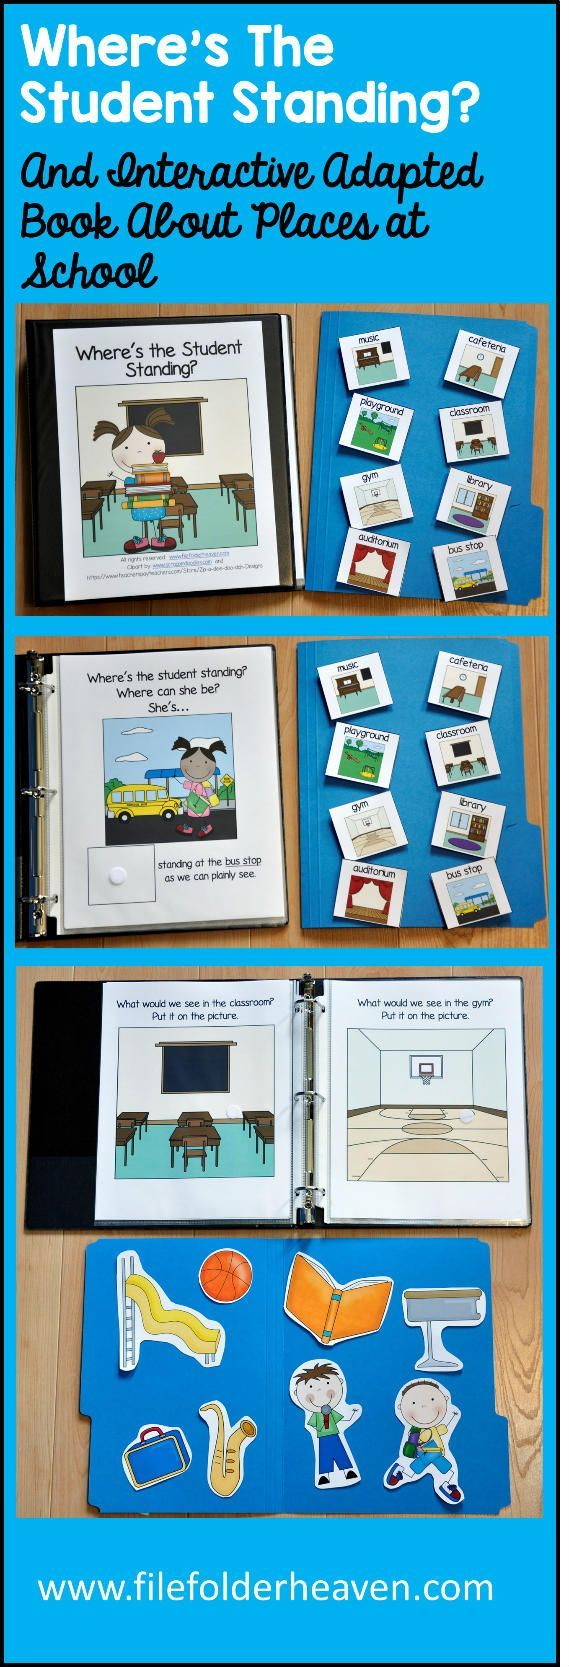 190 best Back-to-School images on Pinterest | Classroom ideas ...